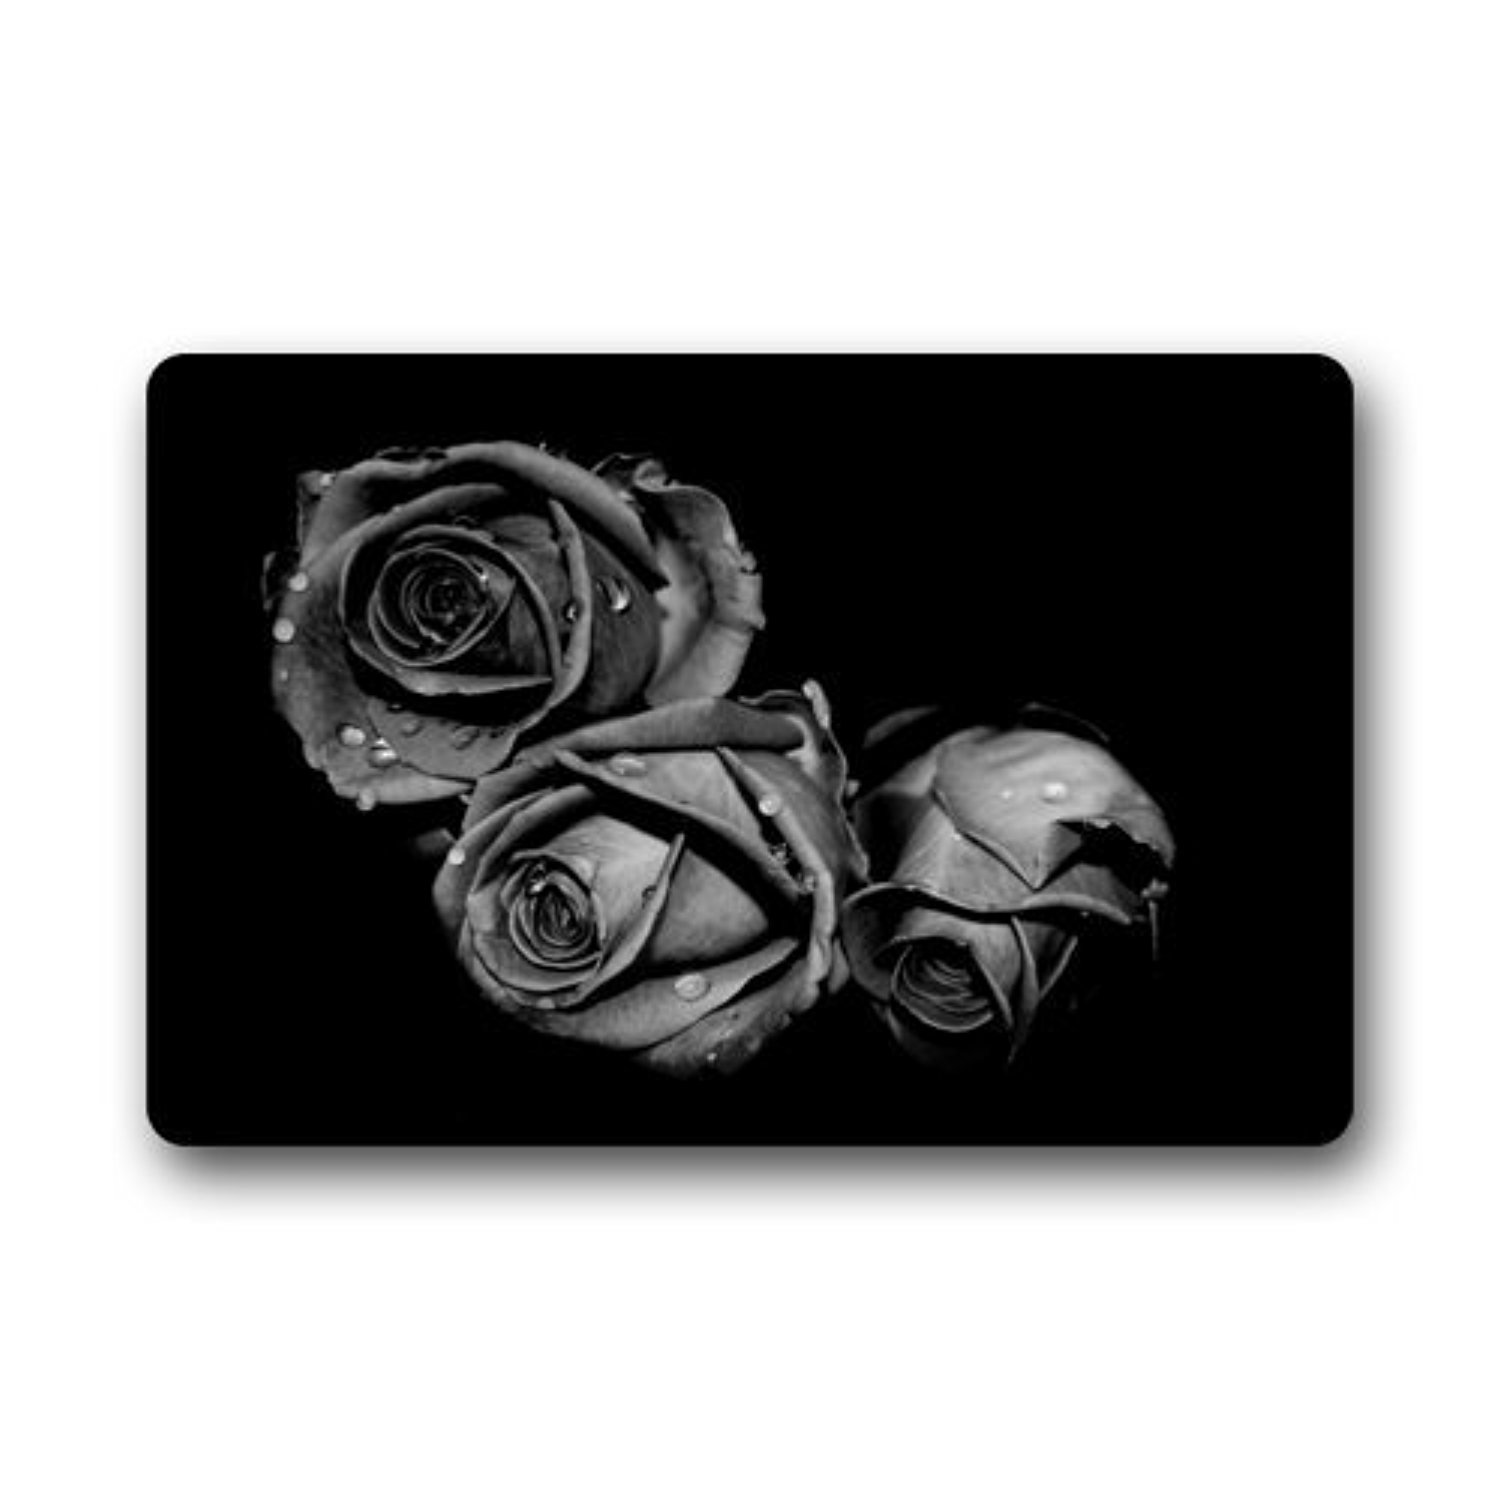 Black-Rose-Non-Slip-Rubber-Entrance-Door-Mat-Doormats-x-Inch-Awesome-products-selected-wallpaper-wpc9203066